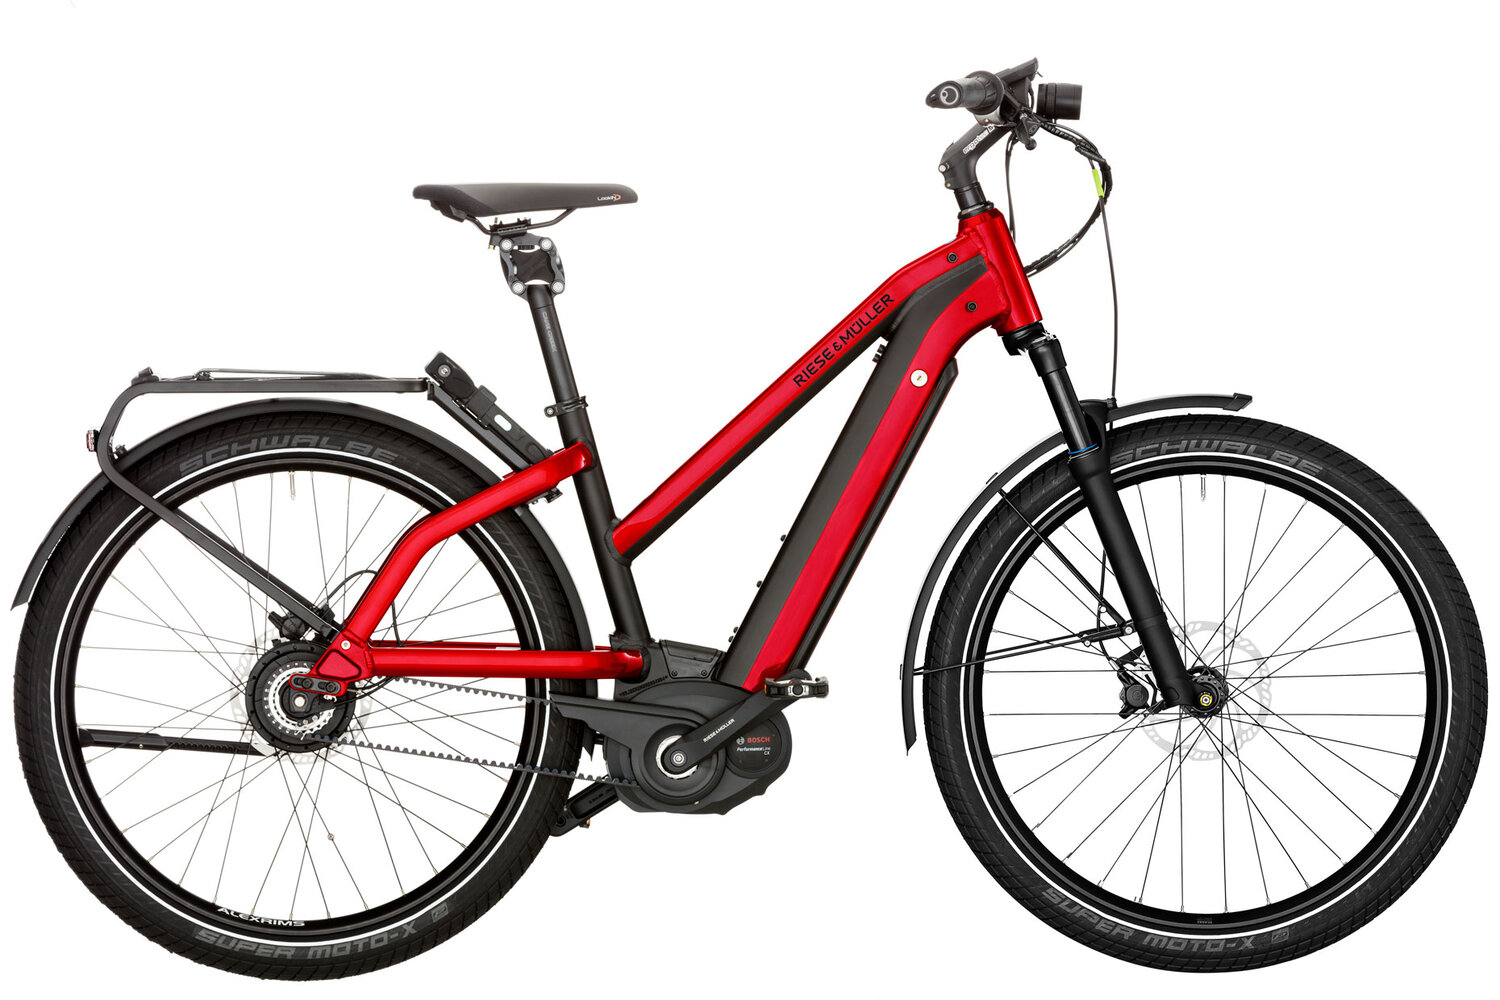 2020 Riese Muller Charger Christchurch Electric Bicycles